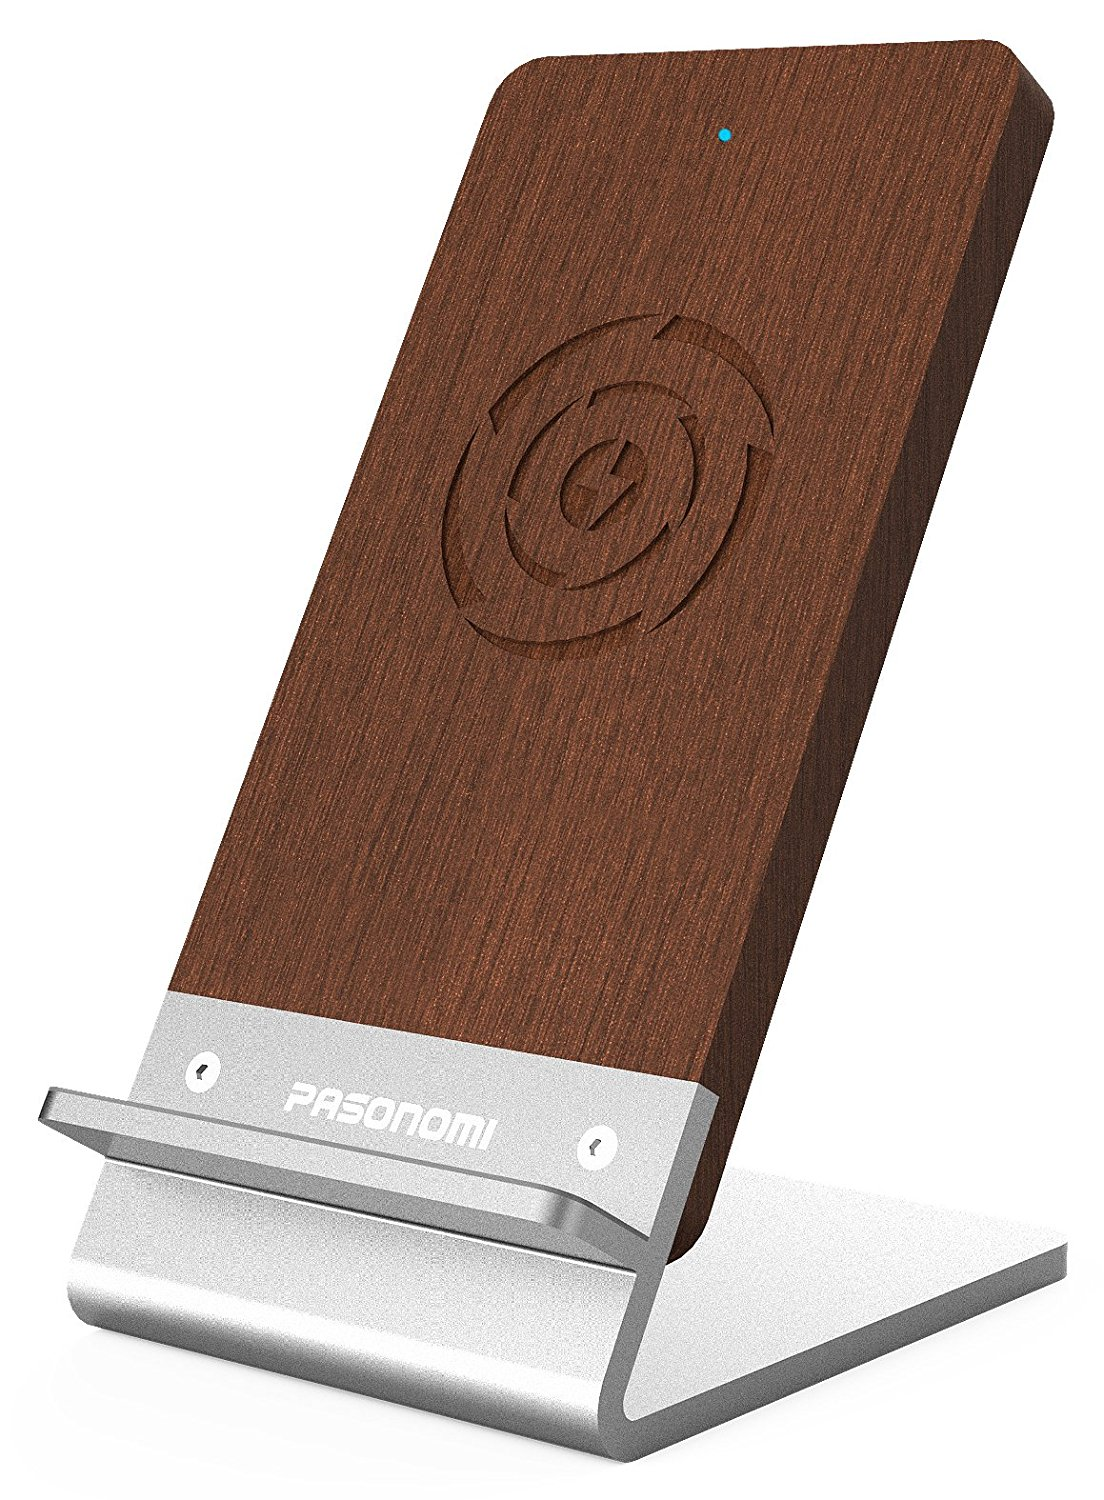 Pasonomi Wood Qi Fast Wireless Charging Stand for All Qi Enabled Devices